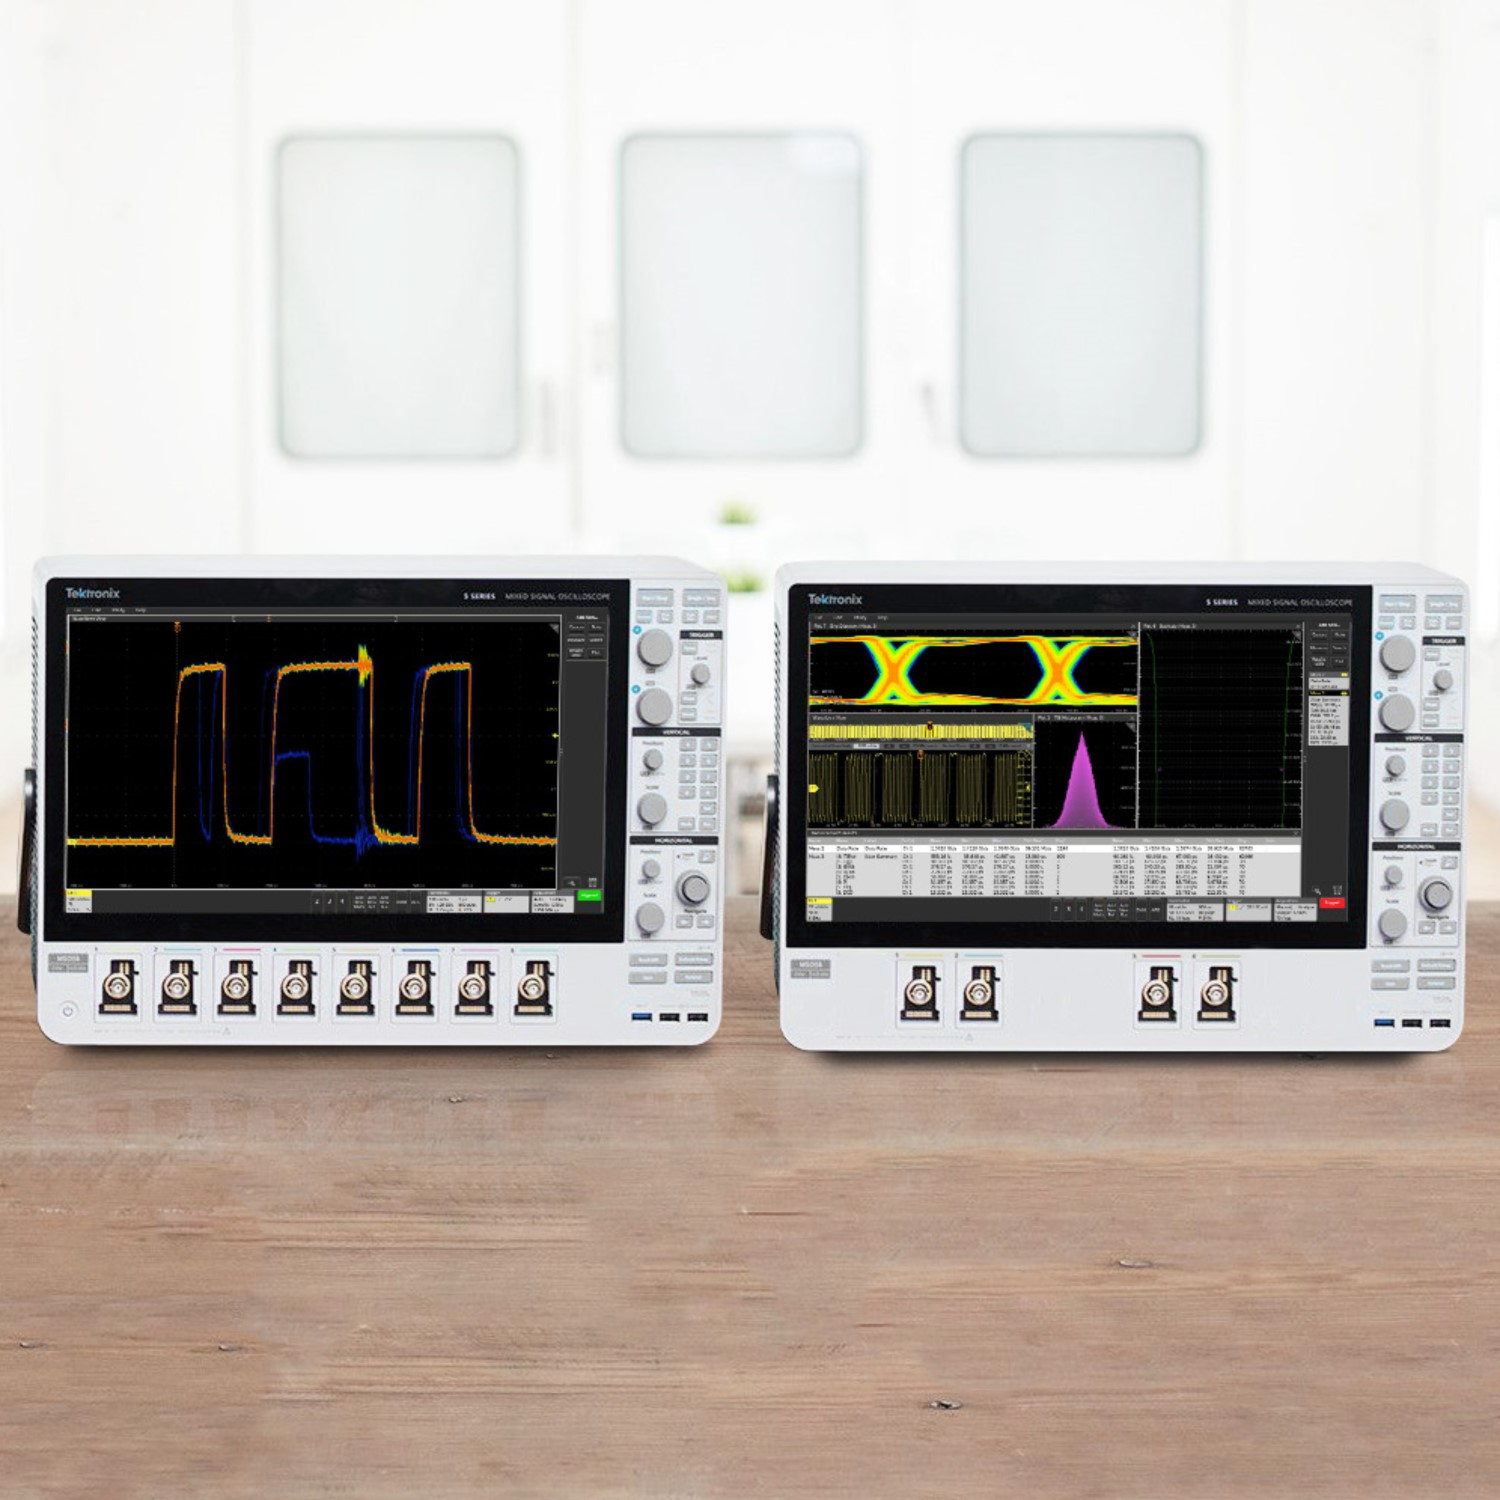 tektronix_5 & 6 Series MSO_1500_1500